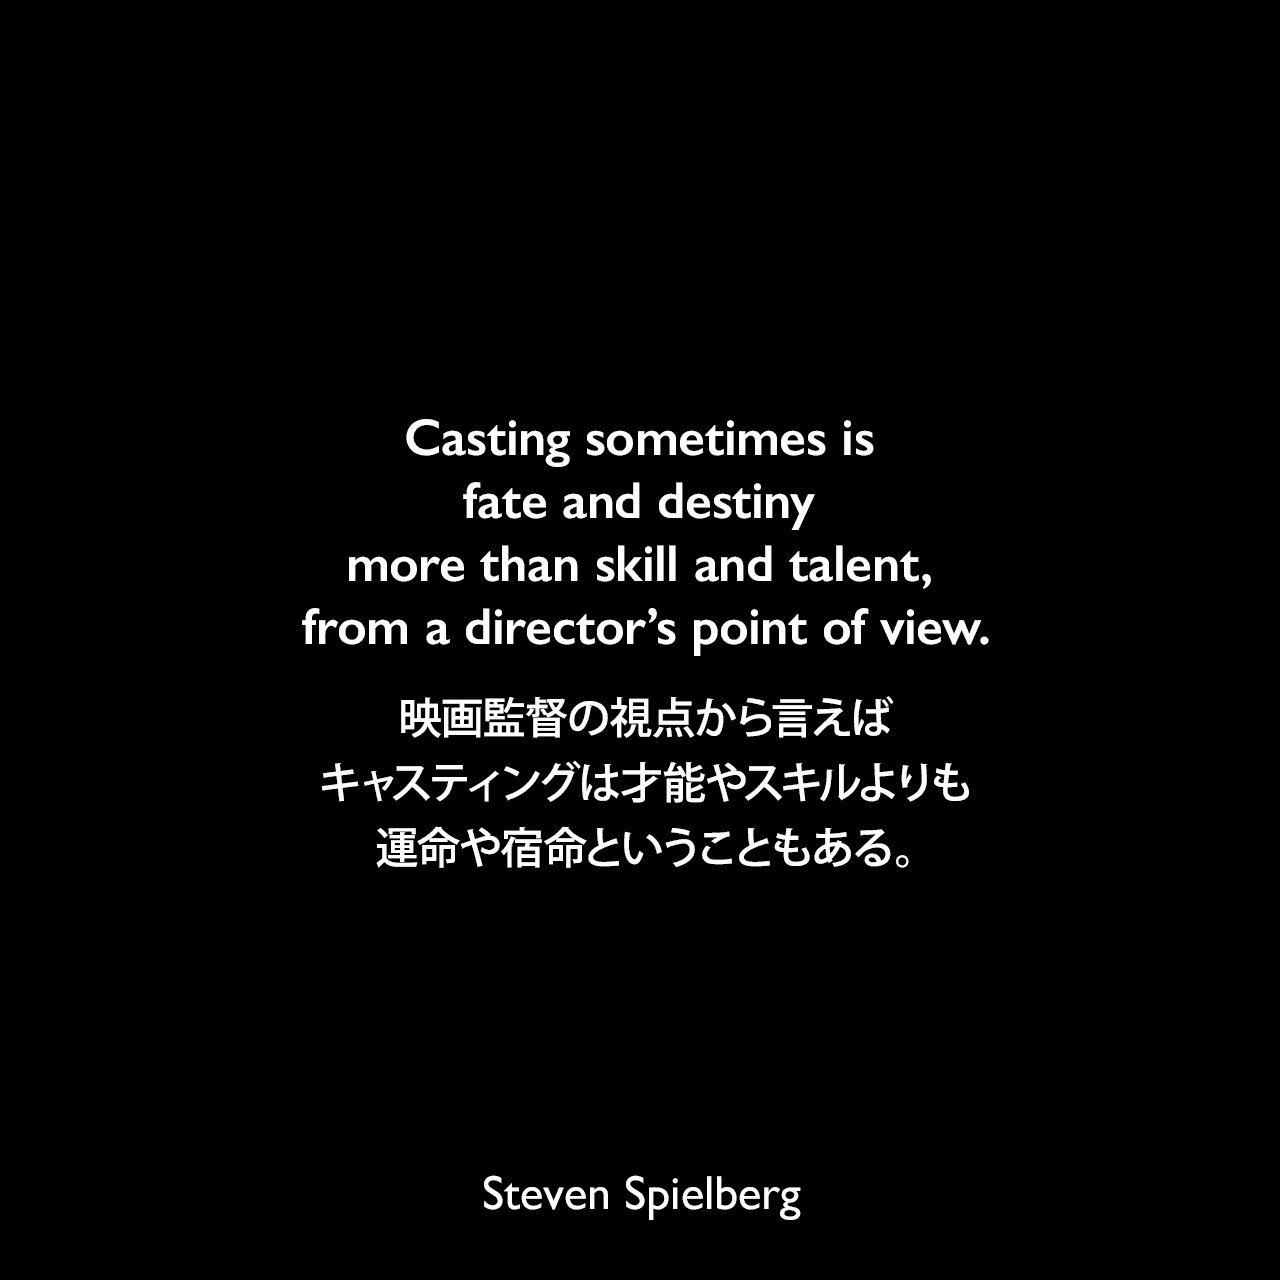 Casting sometimes is fate and destiny more than skill and talent, from a director's point of view.映画監督の視点から言えば、キャスティングは才能やスキルよりも運命や宿命ということもある。Steven Spielberg